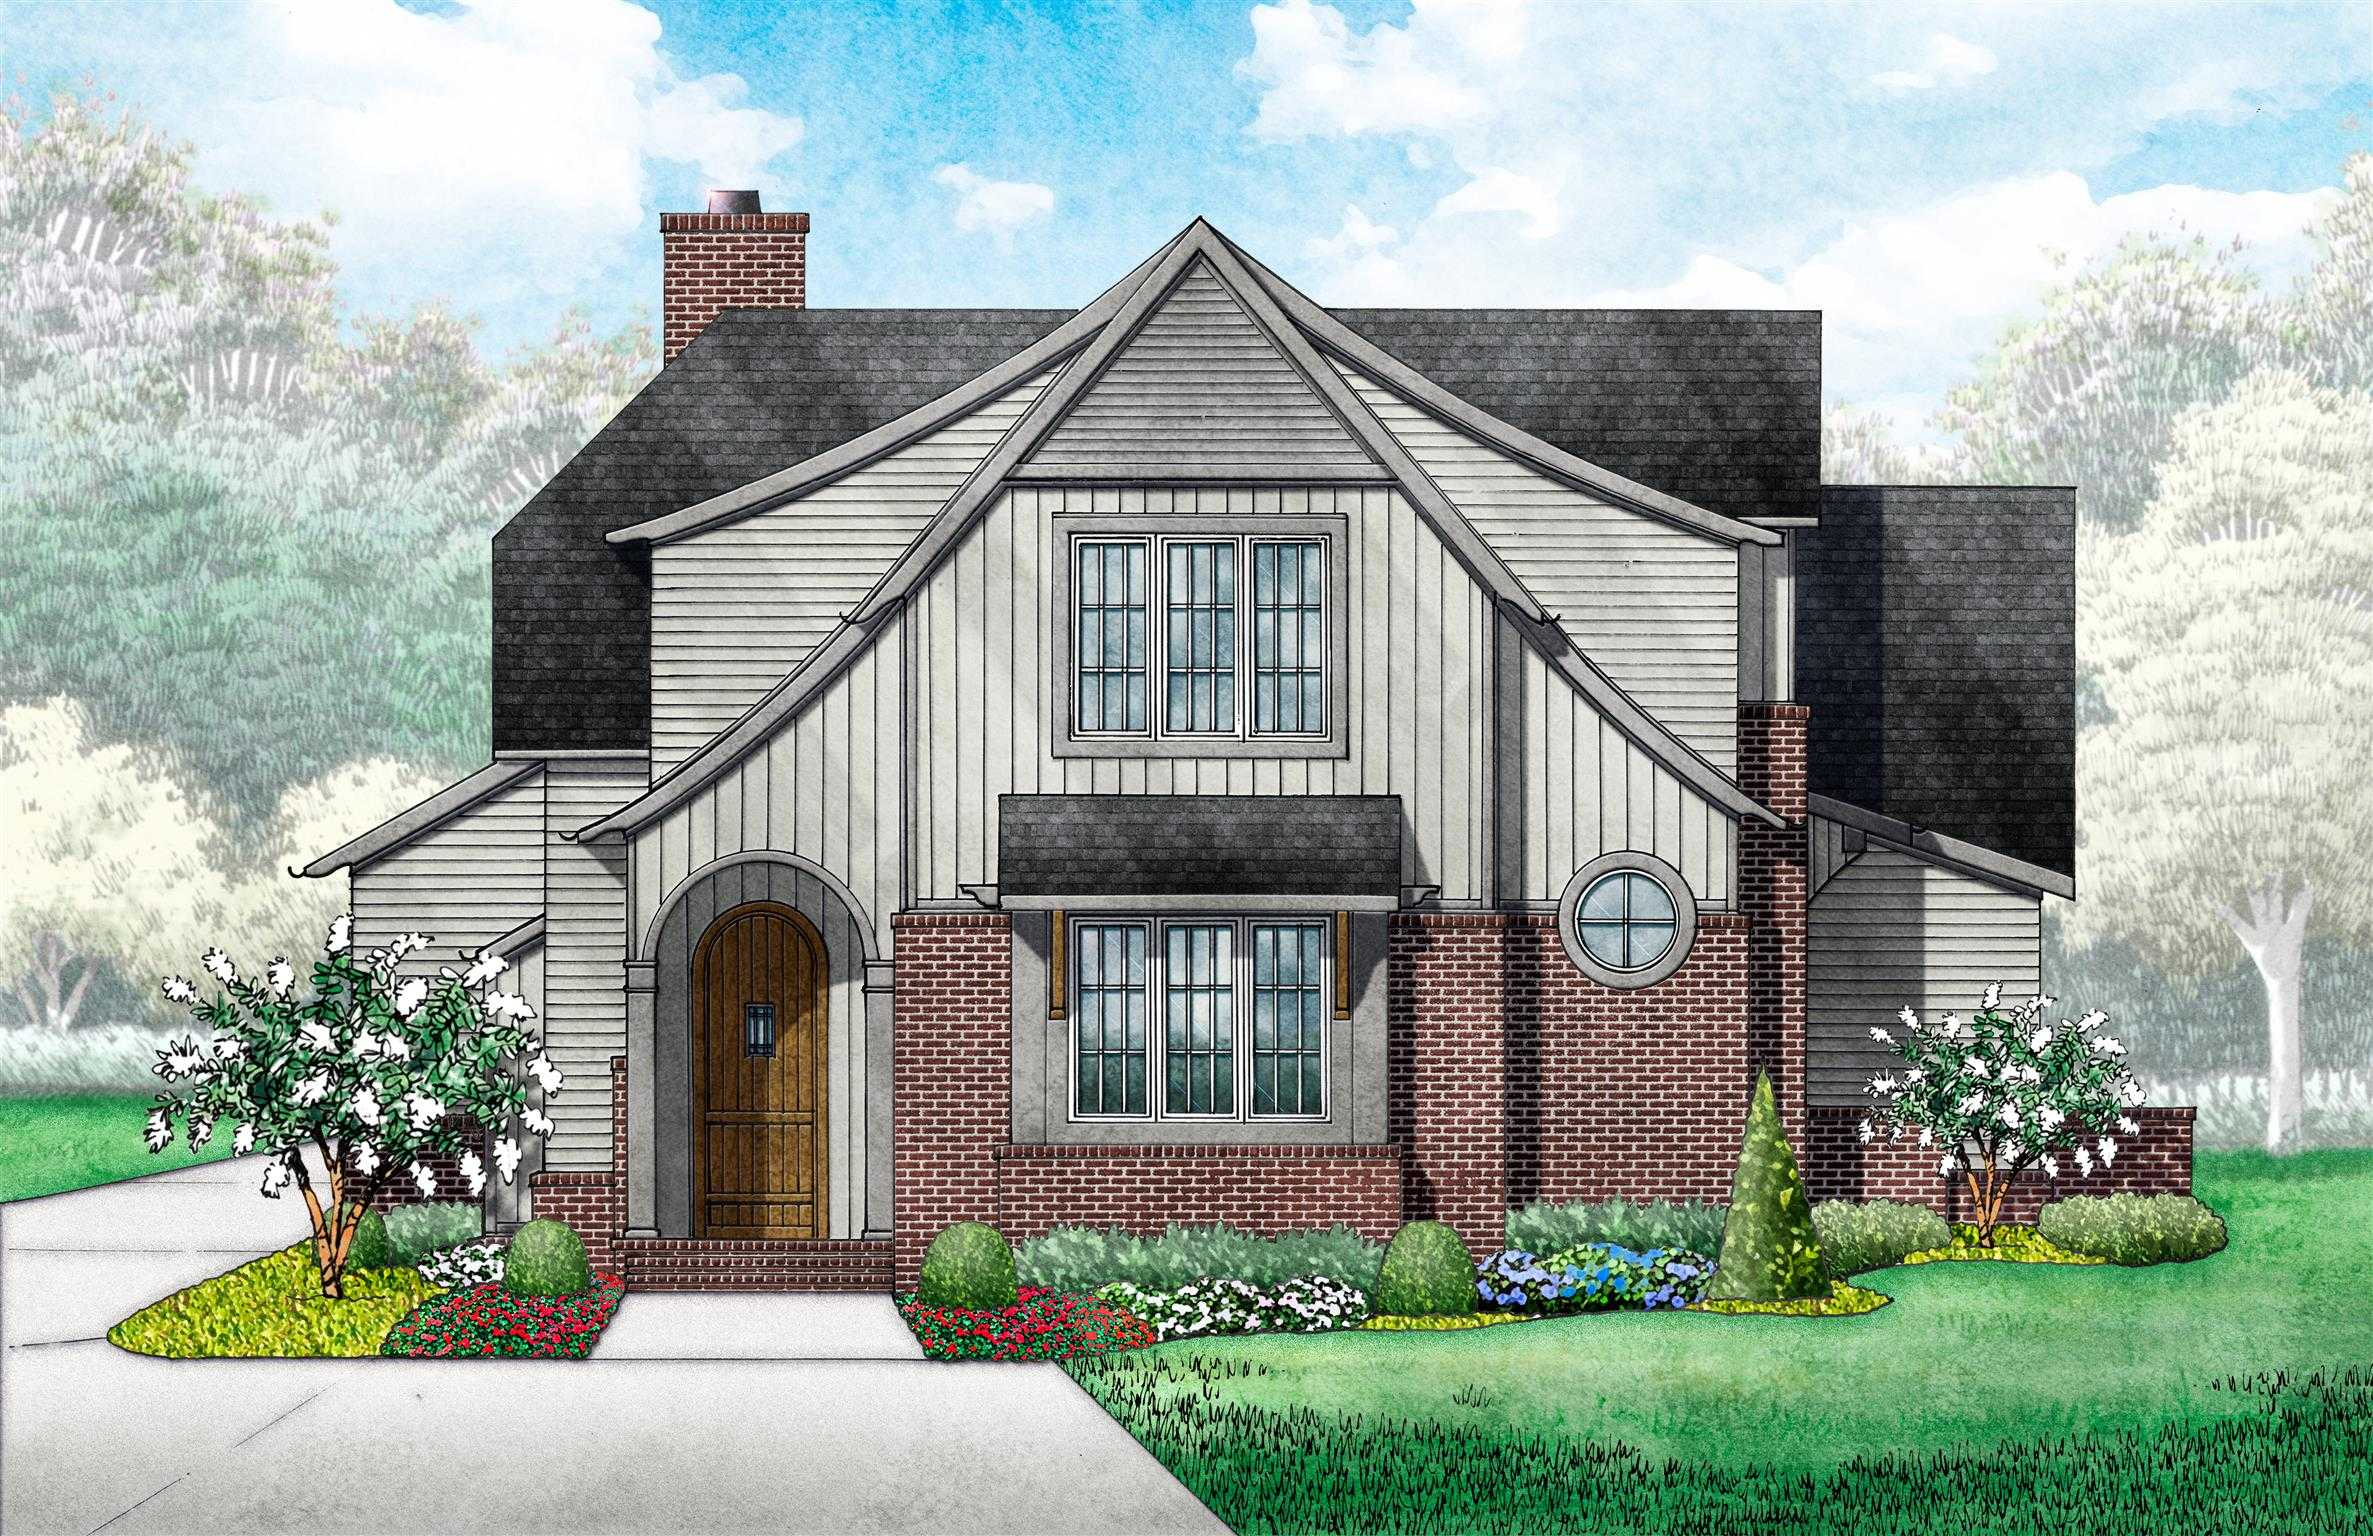 $1,279,000 - 4Br/6Ba -  for Sale in N/a, Franklin